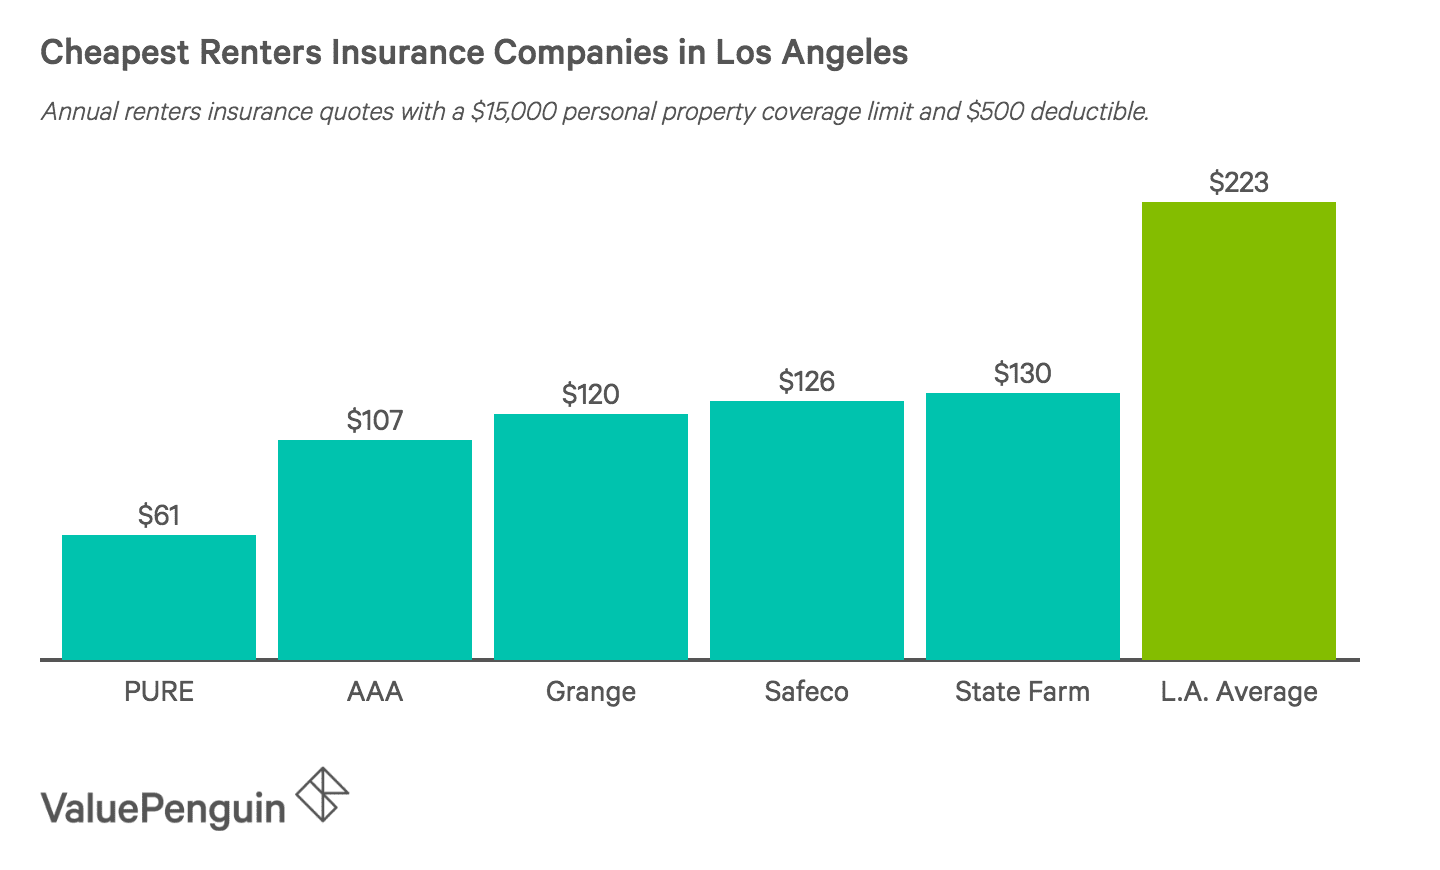 Least Expensive Renters Insurance Choices in LA